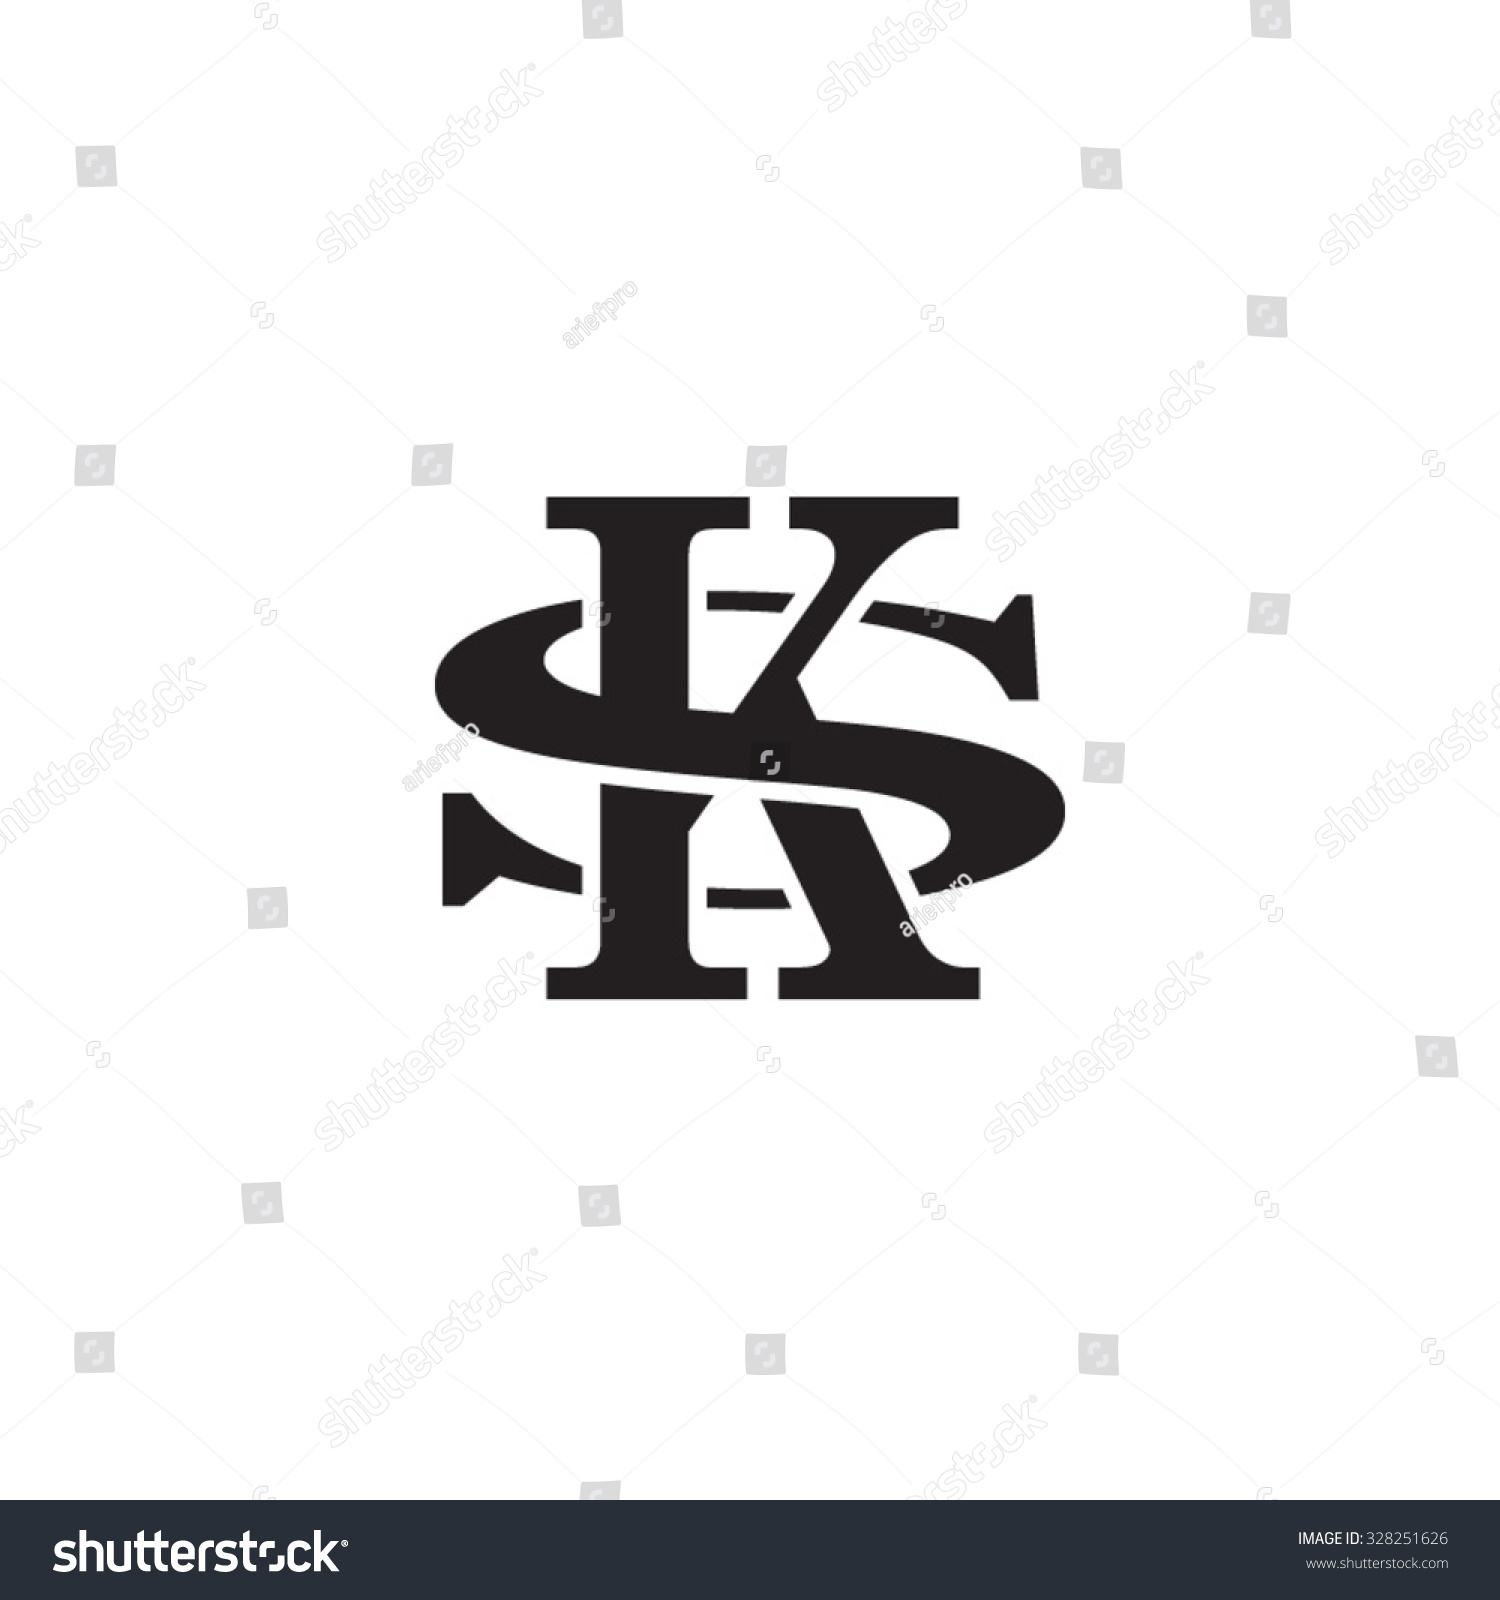 Images Of Letter S And K Together